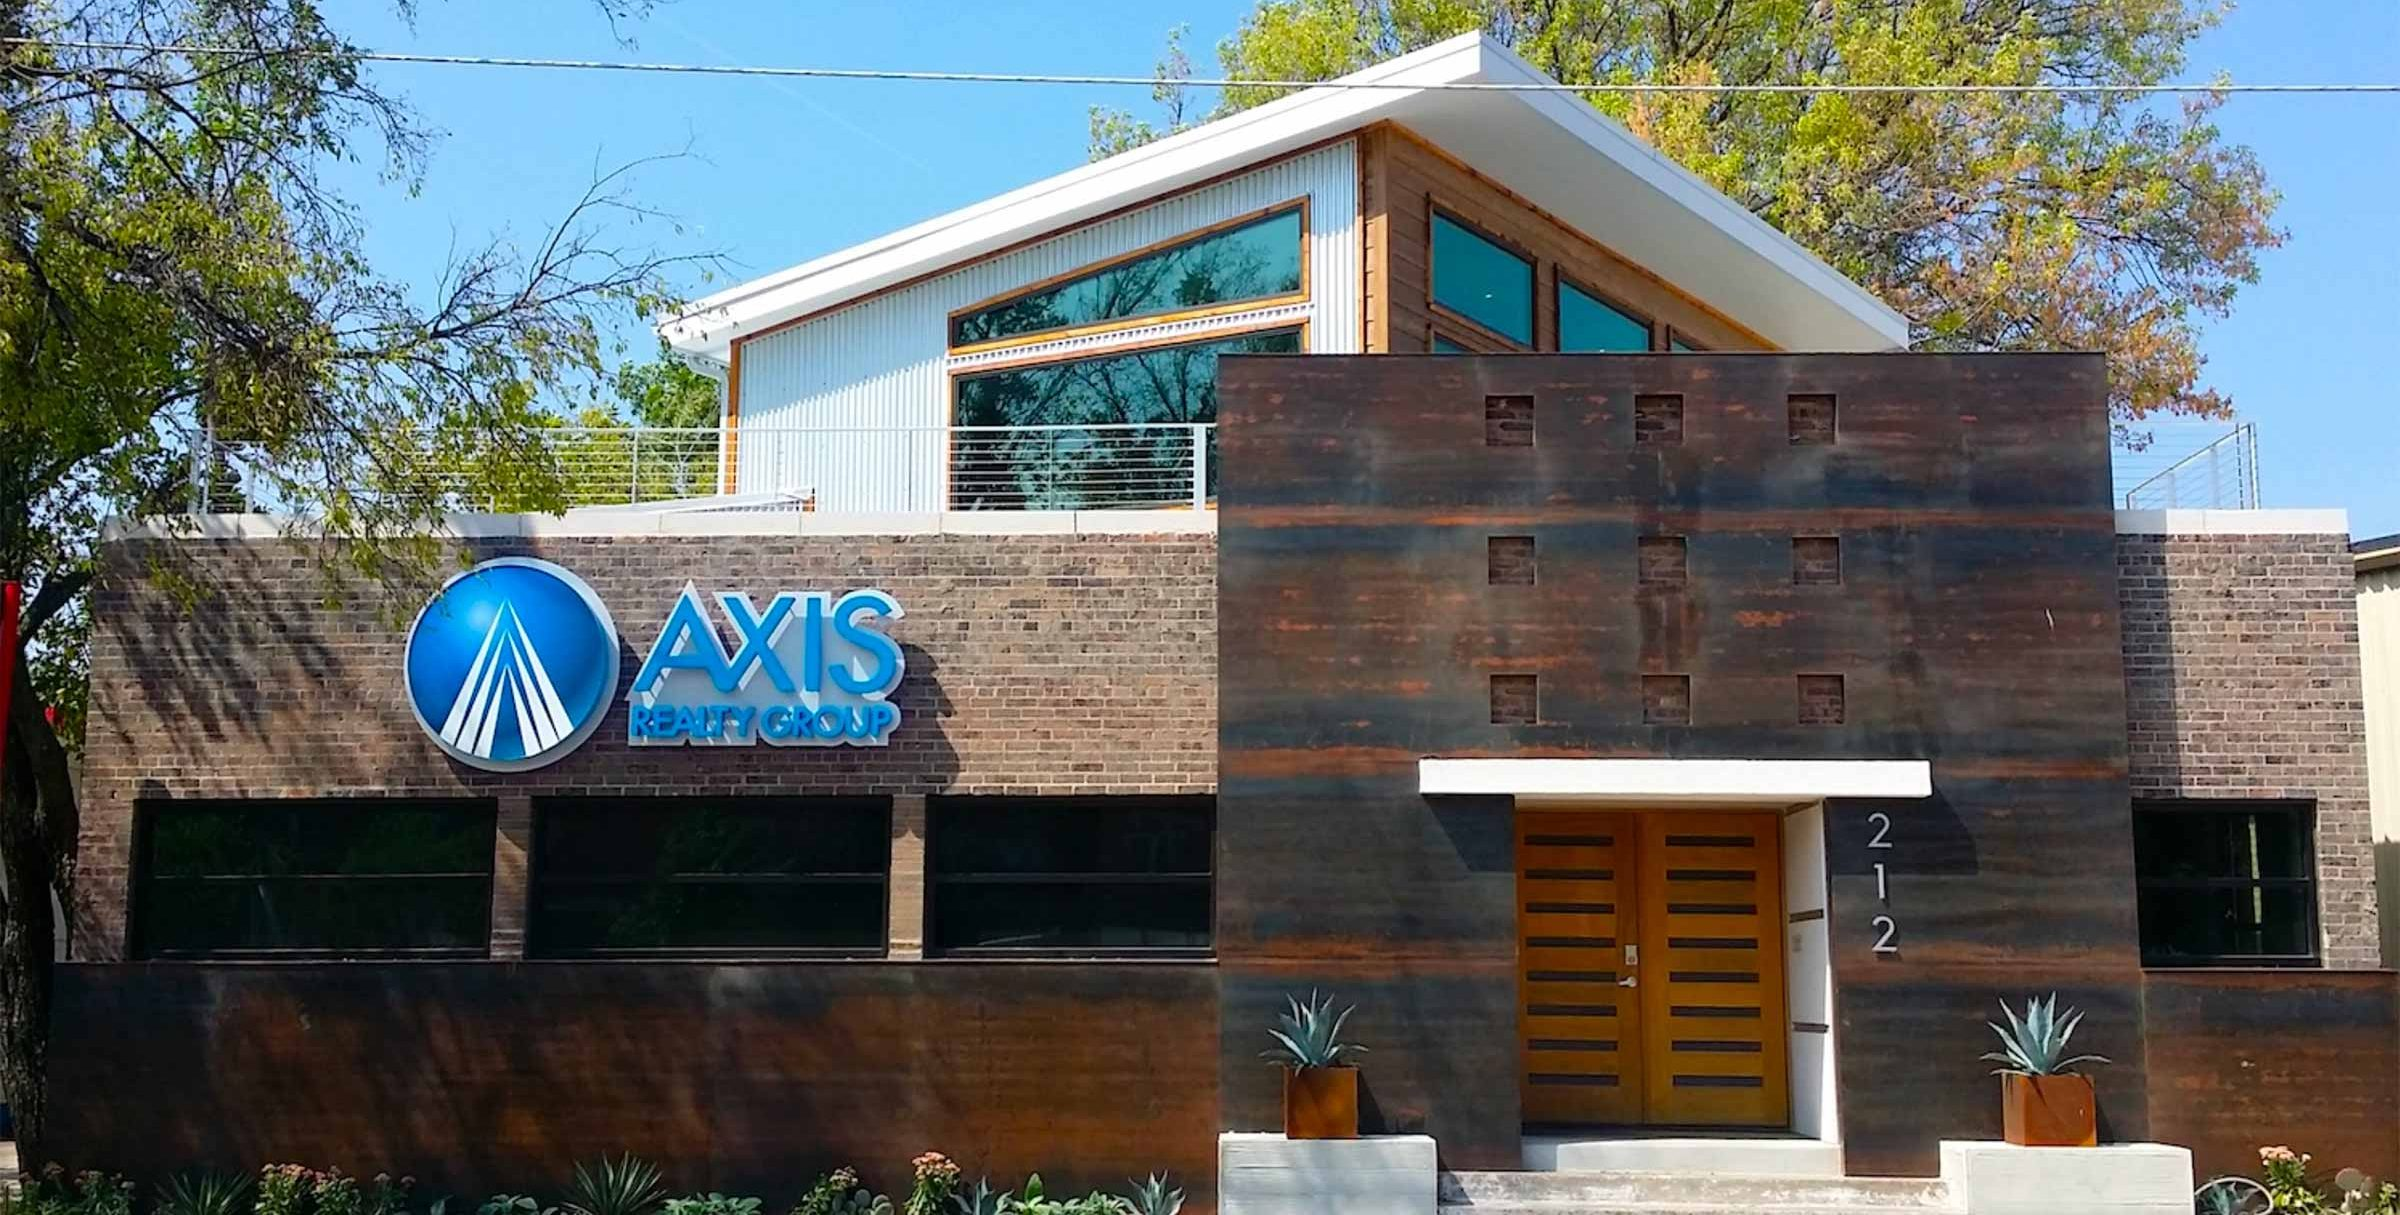 Axis-Realty-Office-Front-(72dpi)